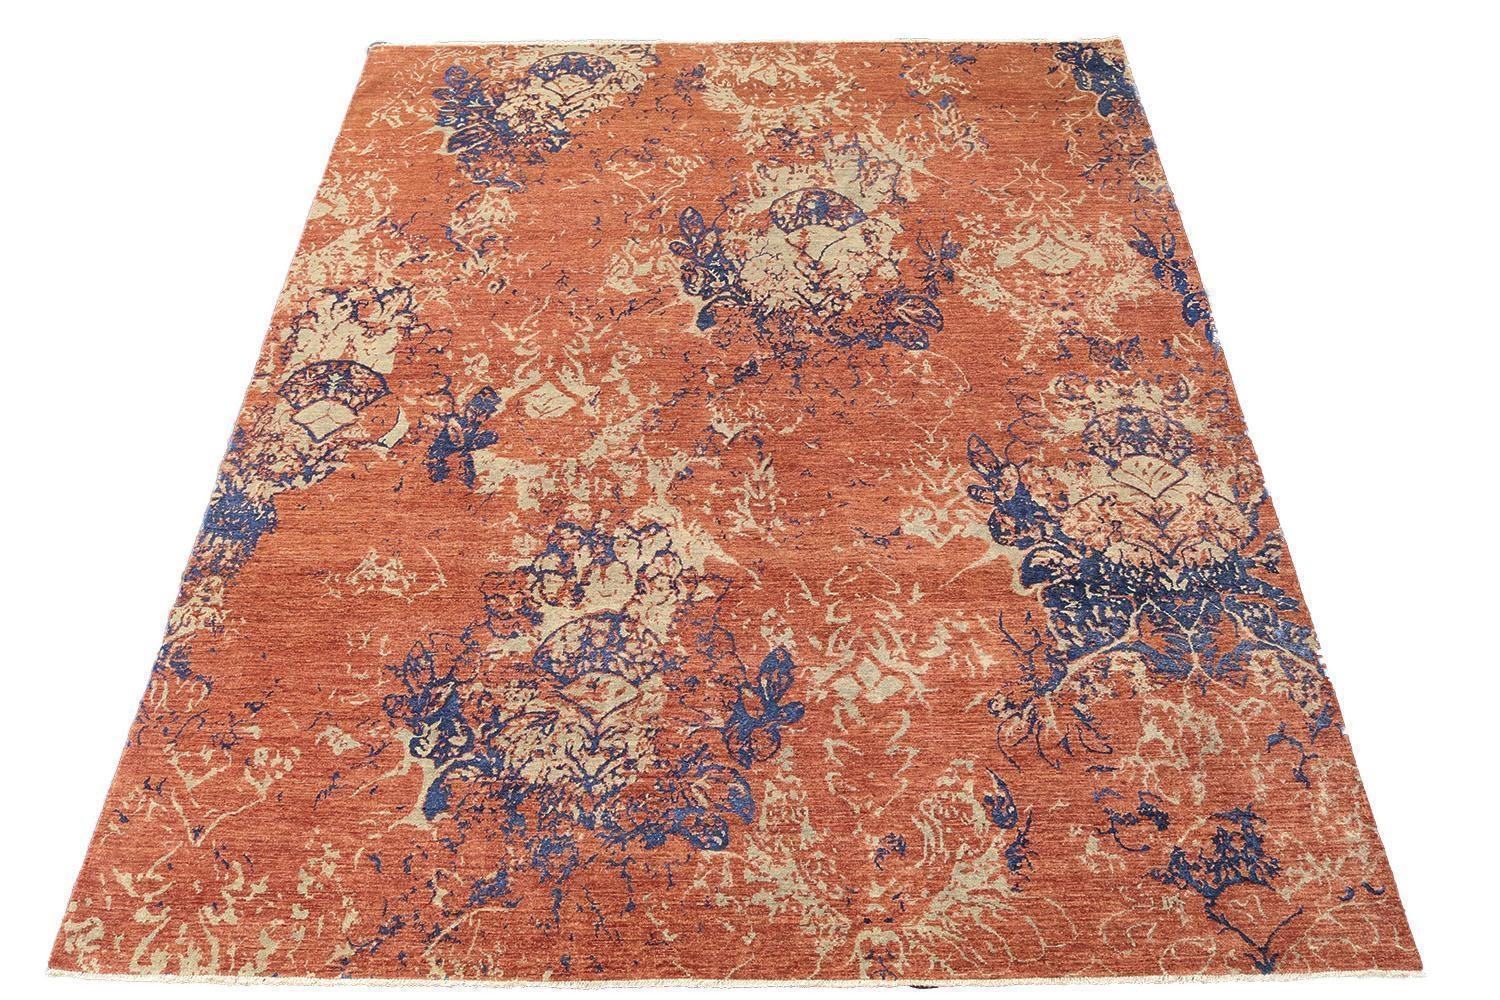 Why You Need Contemporary and Transitional Rugs